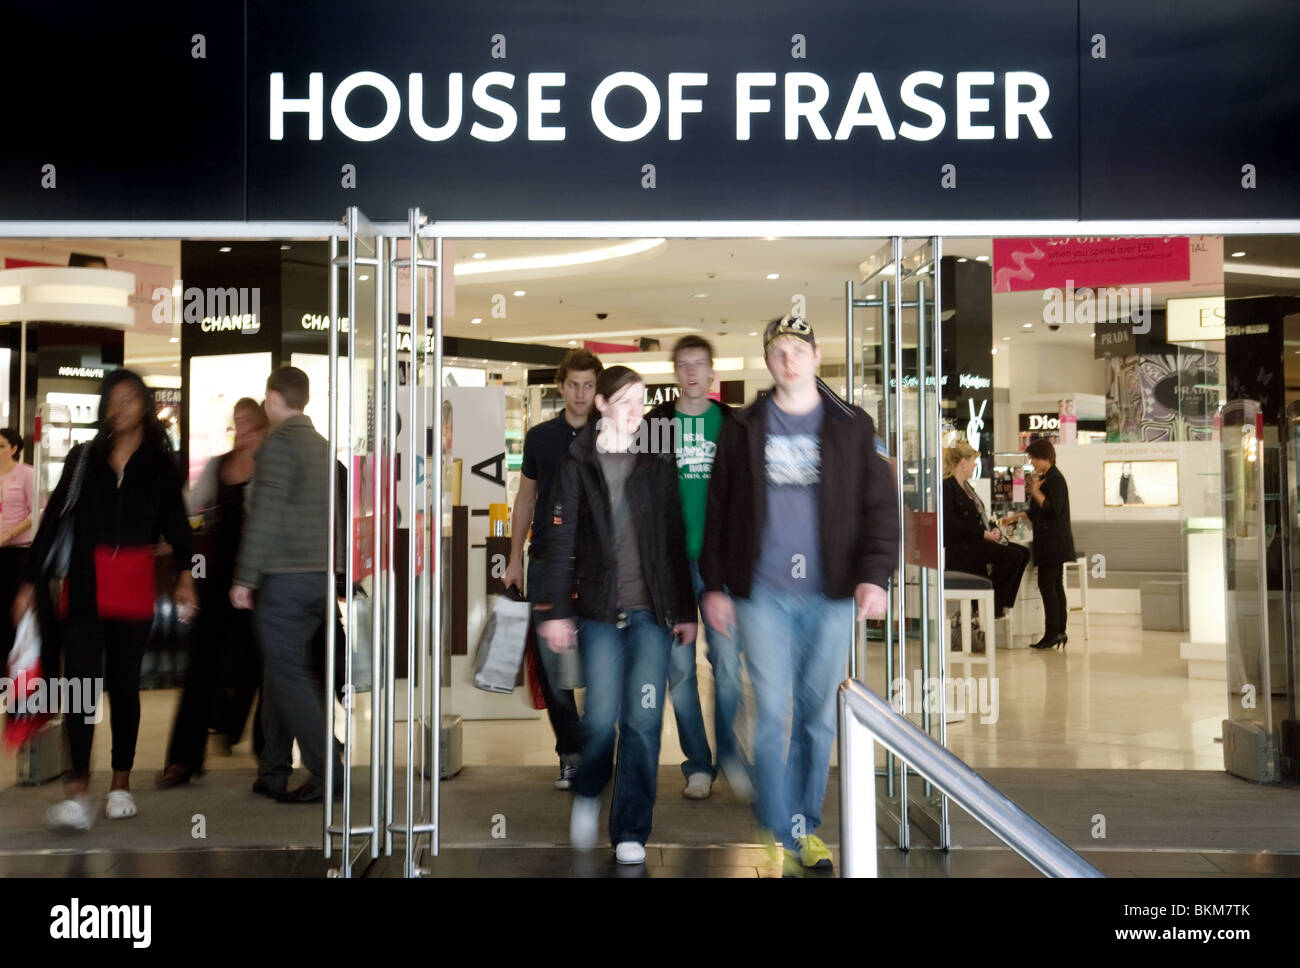 Shoppers coming out of the House of Fraser store, Oxford Street, London UK - Stock Image